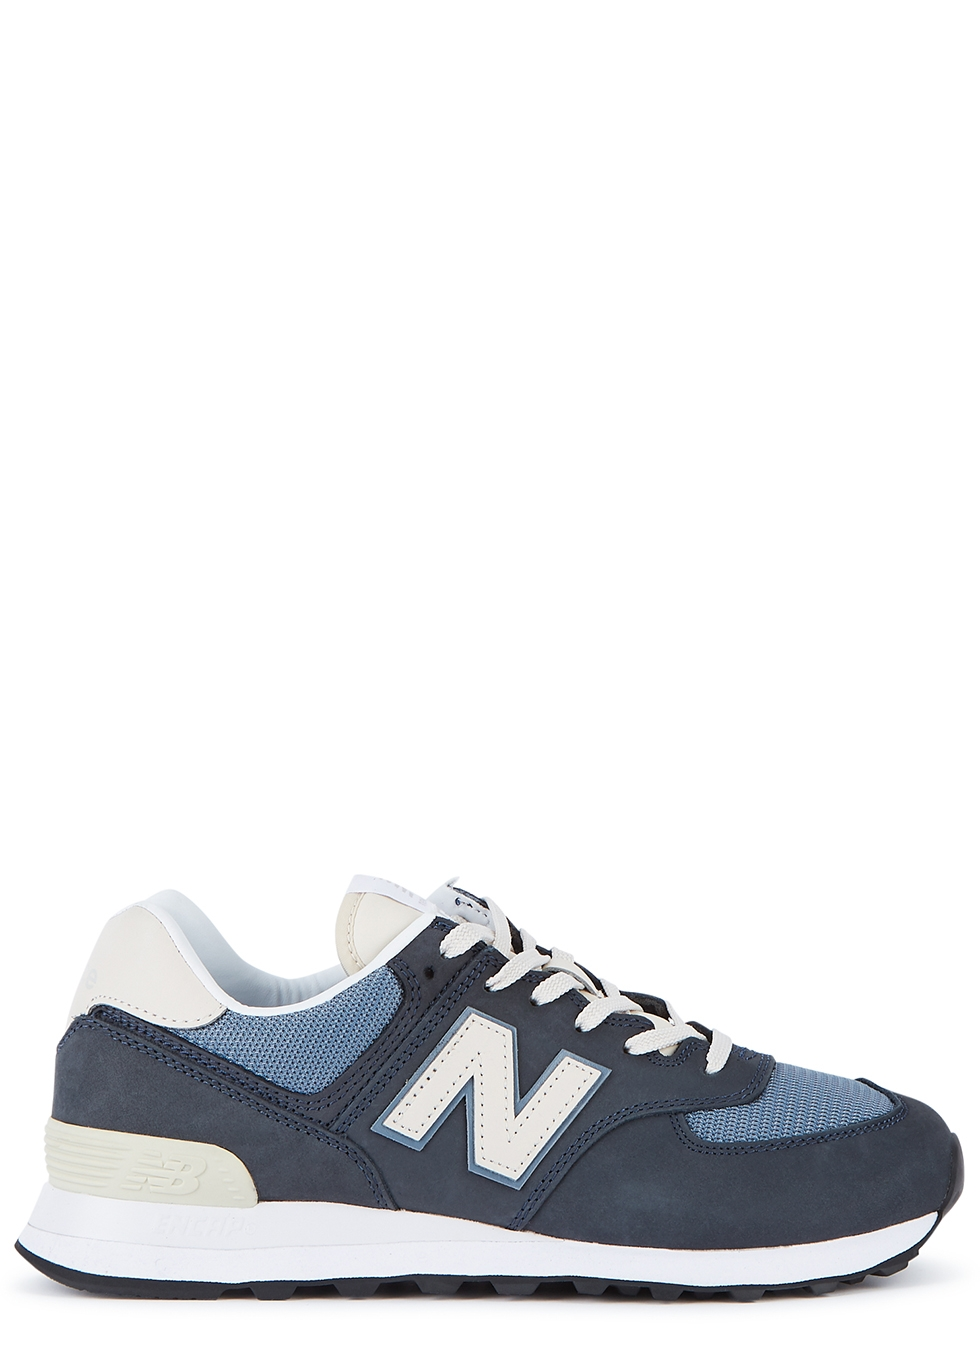 574 navy panelled sneakers